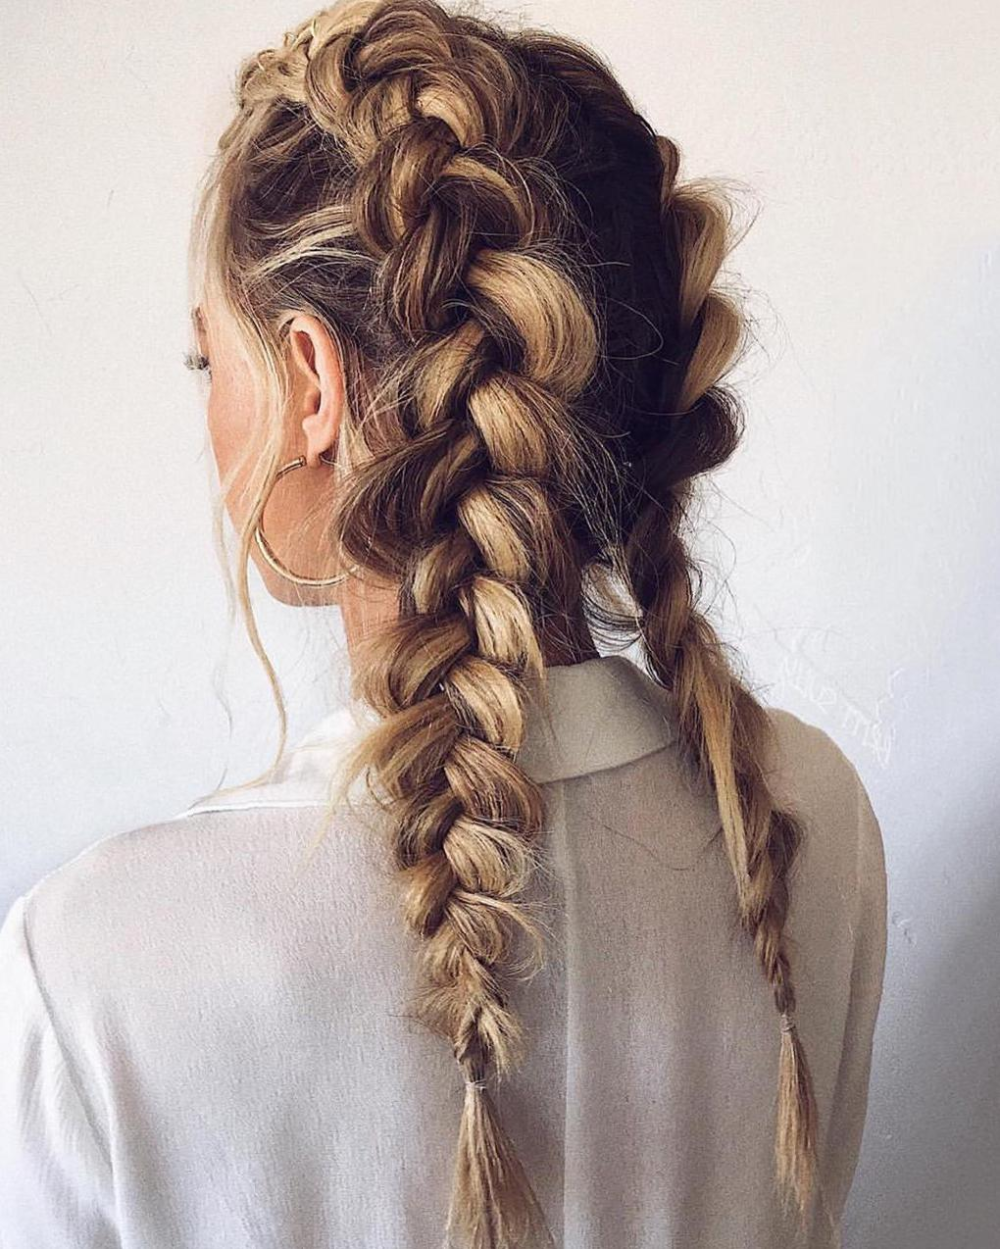 50 Trendy Double Braid Hairstyle Ideas To Keep You Cool Molitsy Blog In 2020 Long Hair Styles Prom Hairstyles For Long Hair Textured Hair